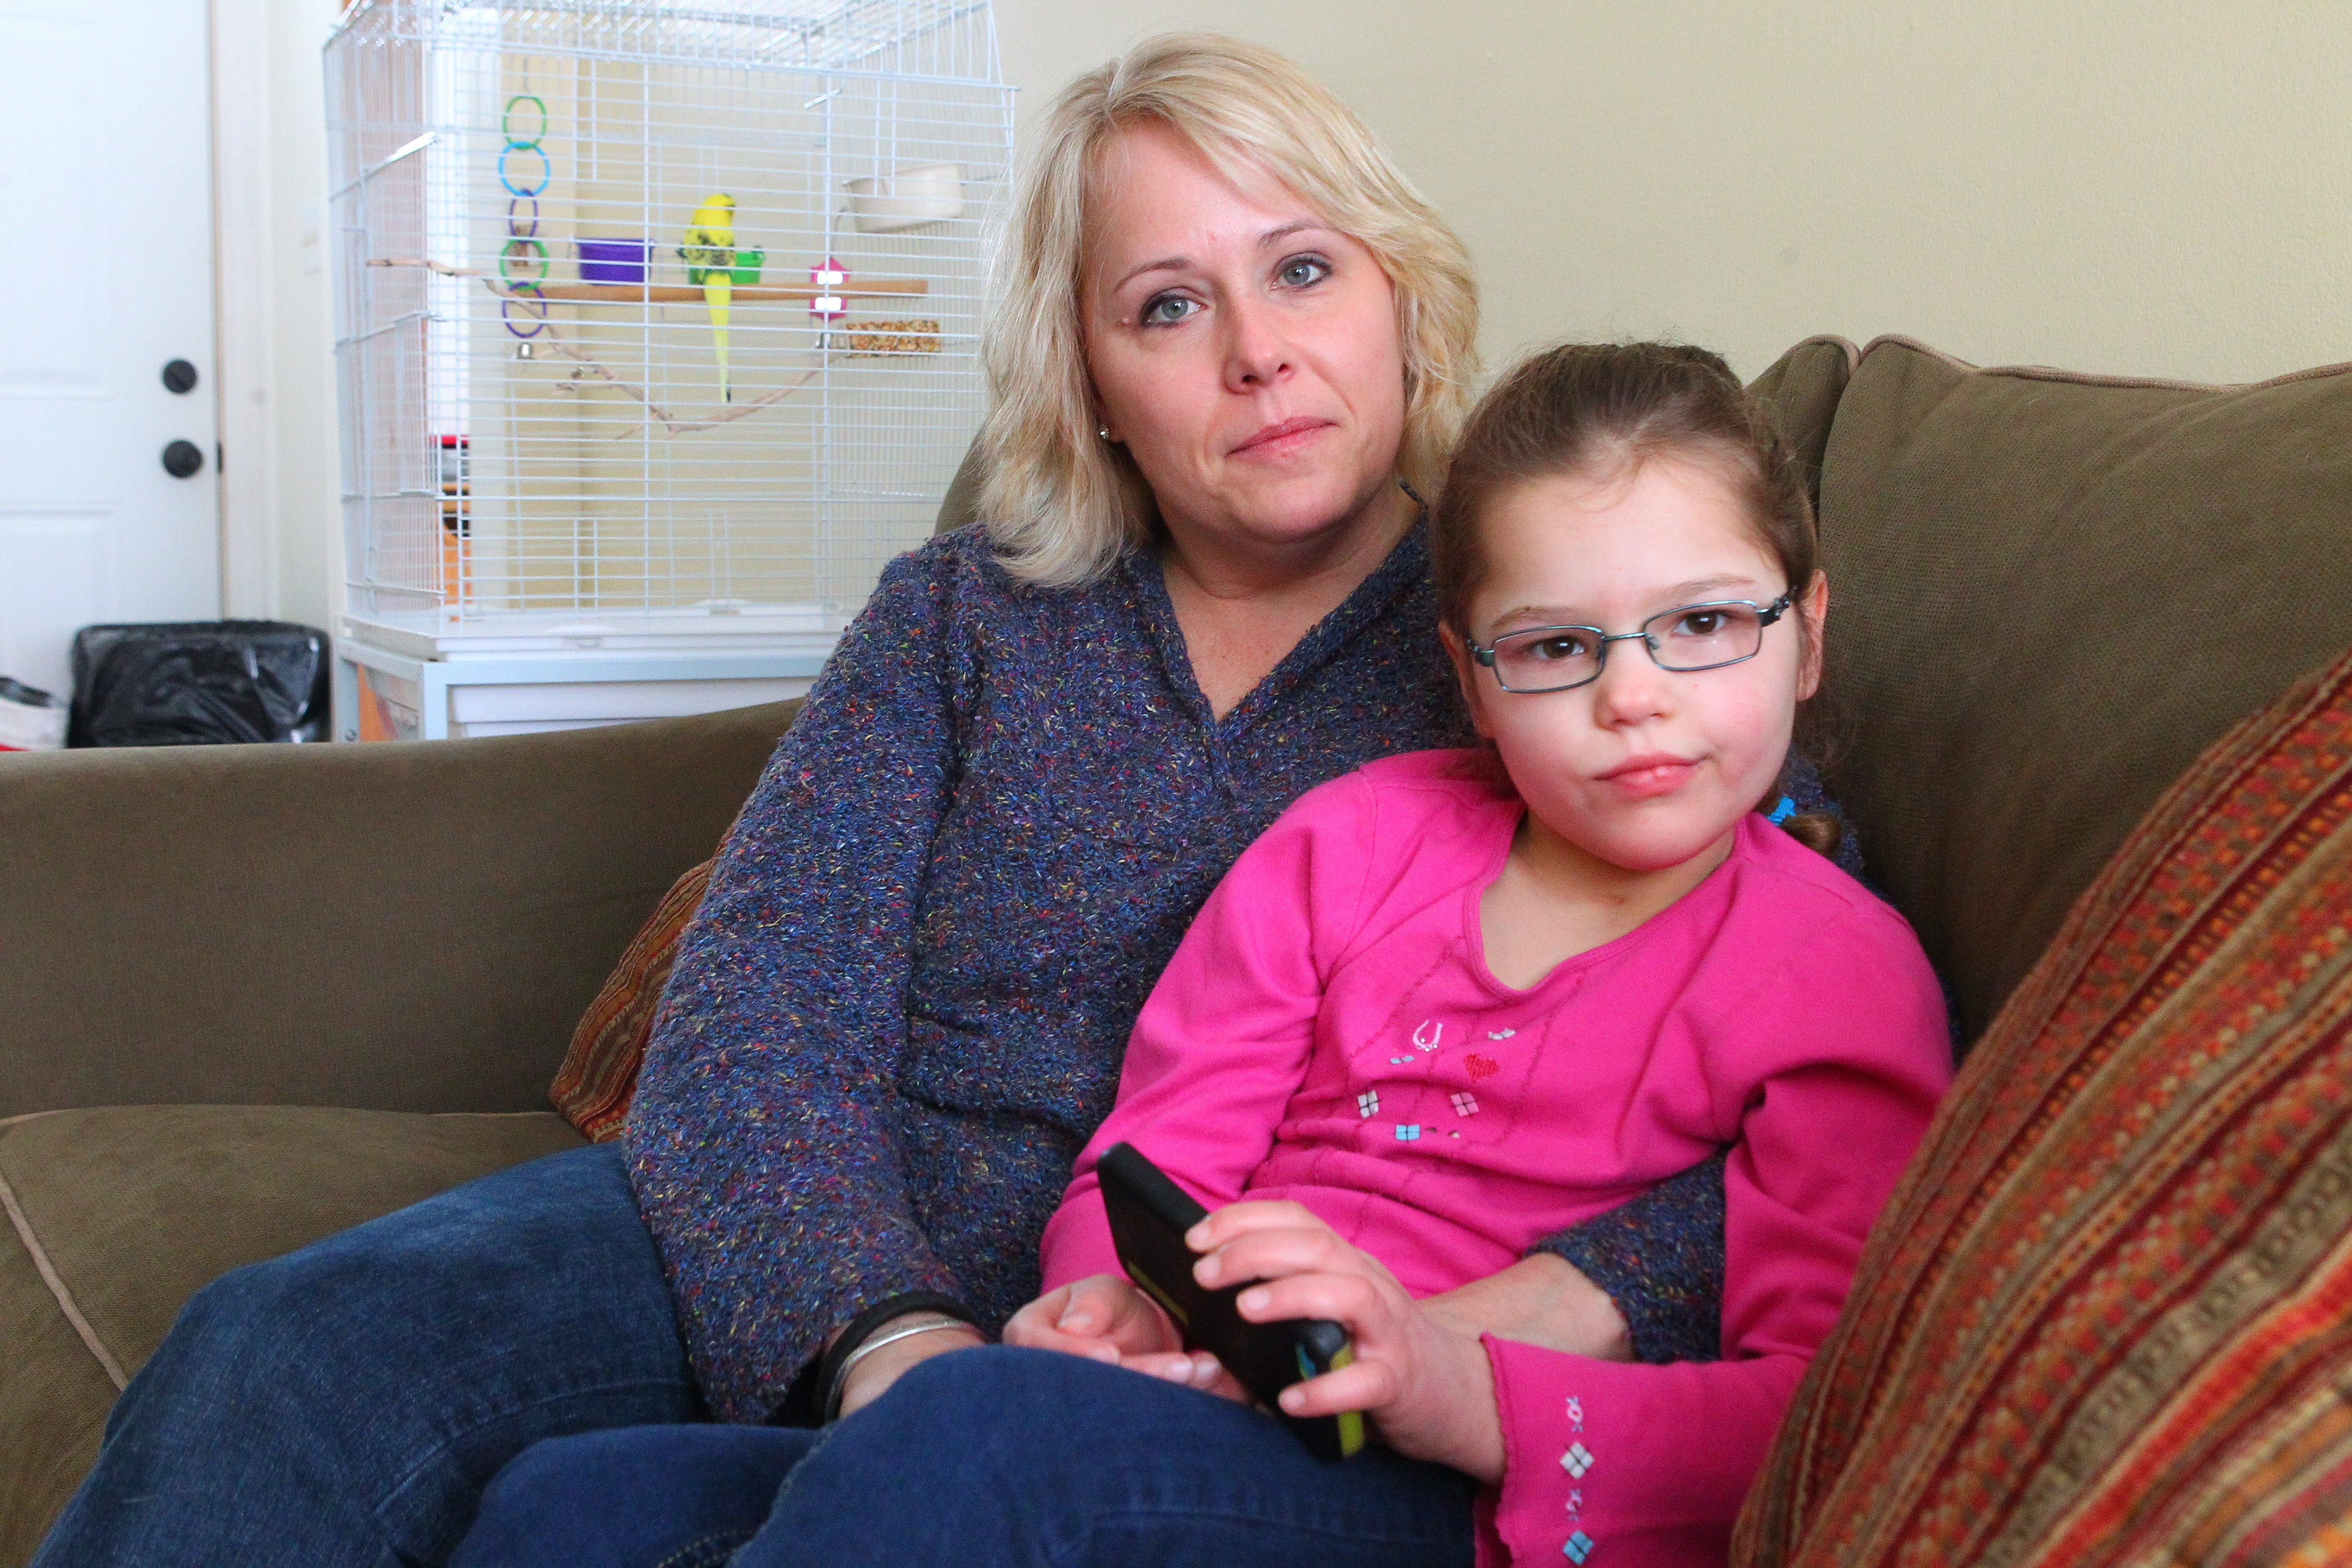 Wendy Conte has changed her legal residence to Colorado that that she can obtain medical marijuana for her daughter, Anna. (John Hickey/Buffalo News)